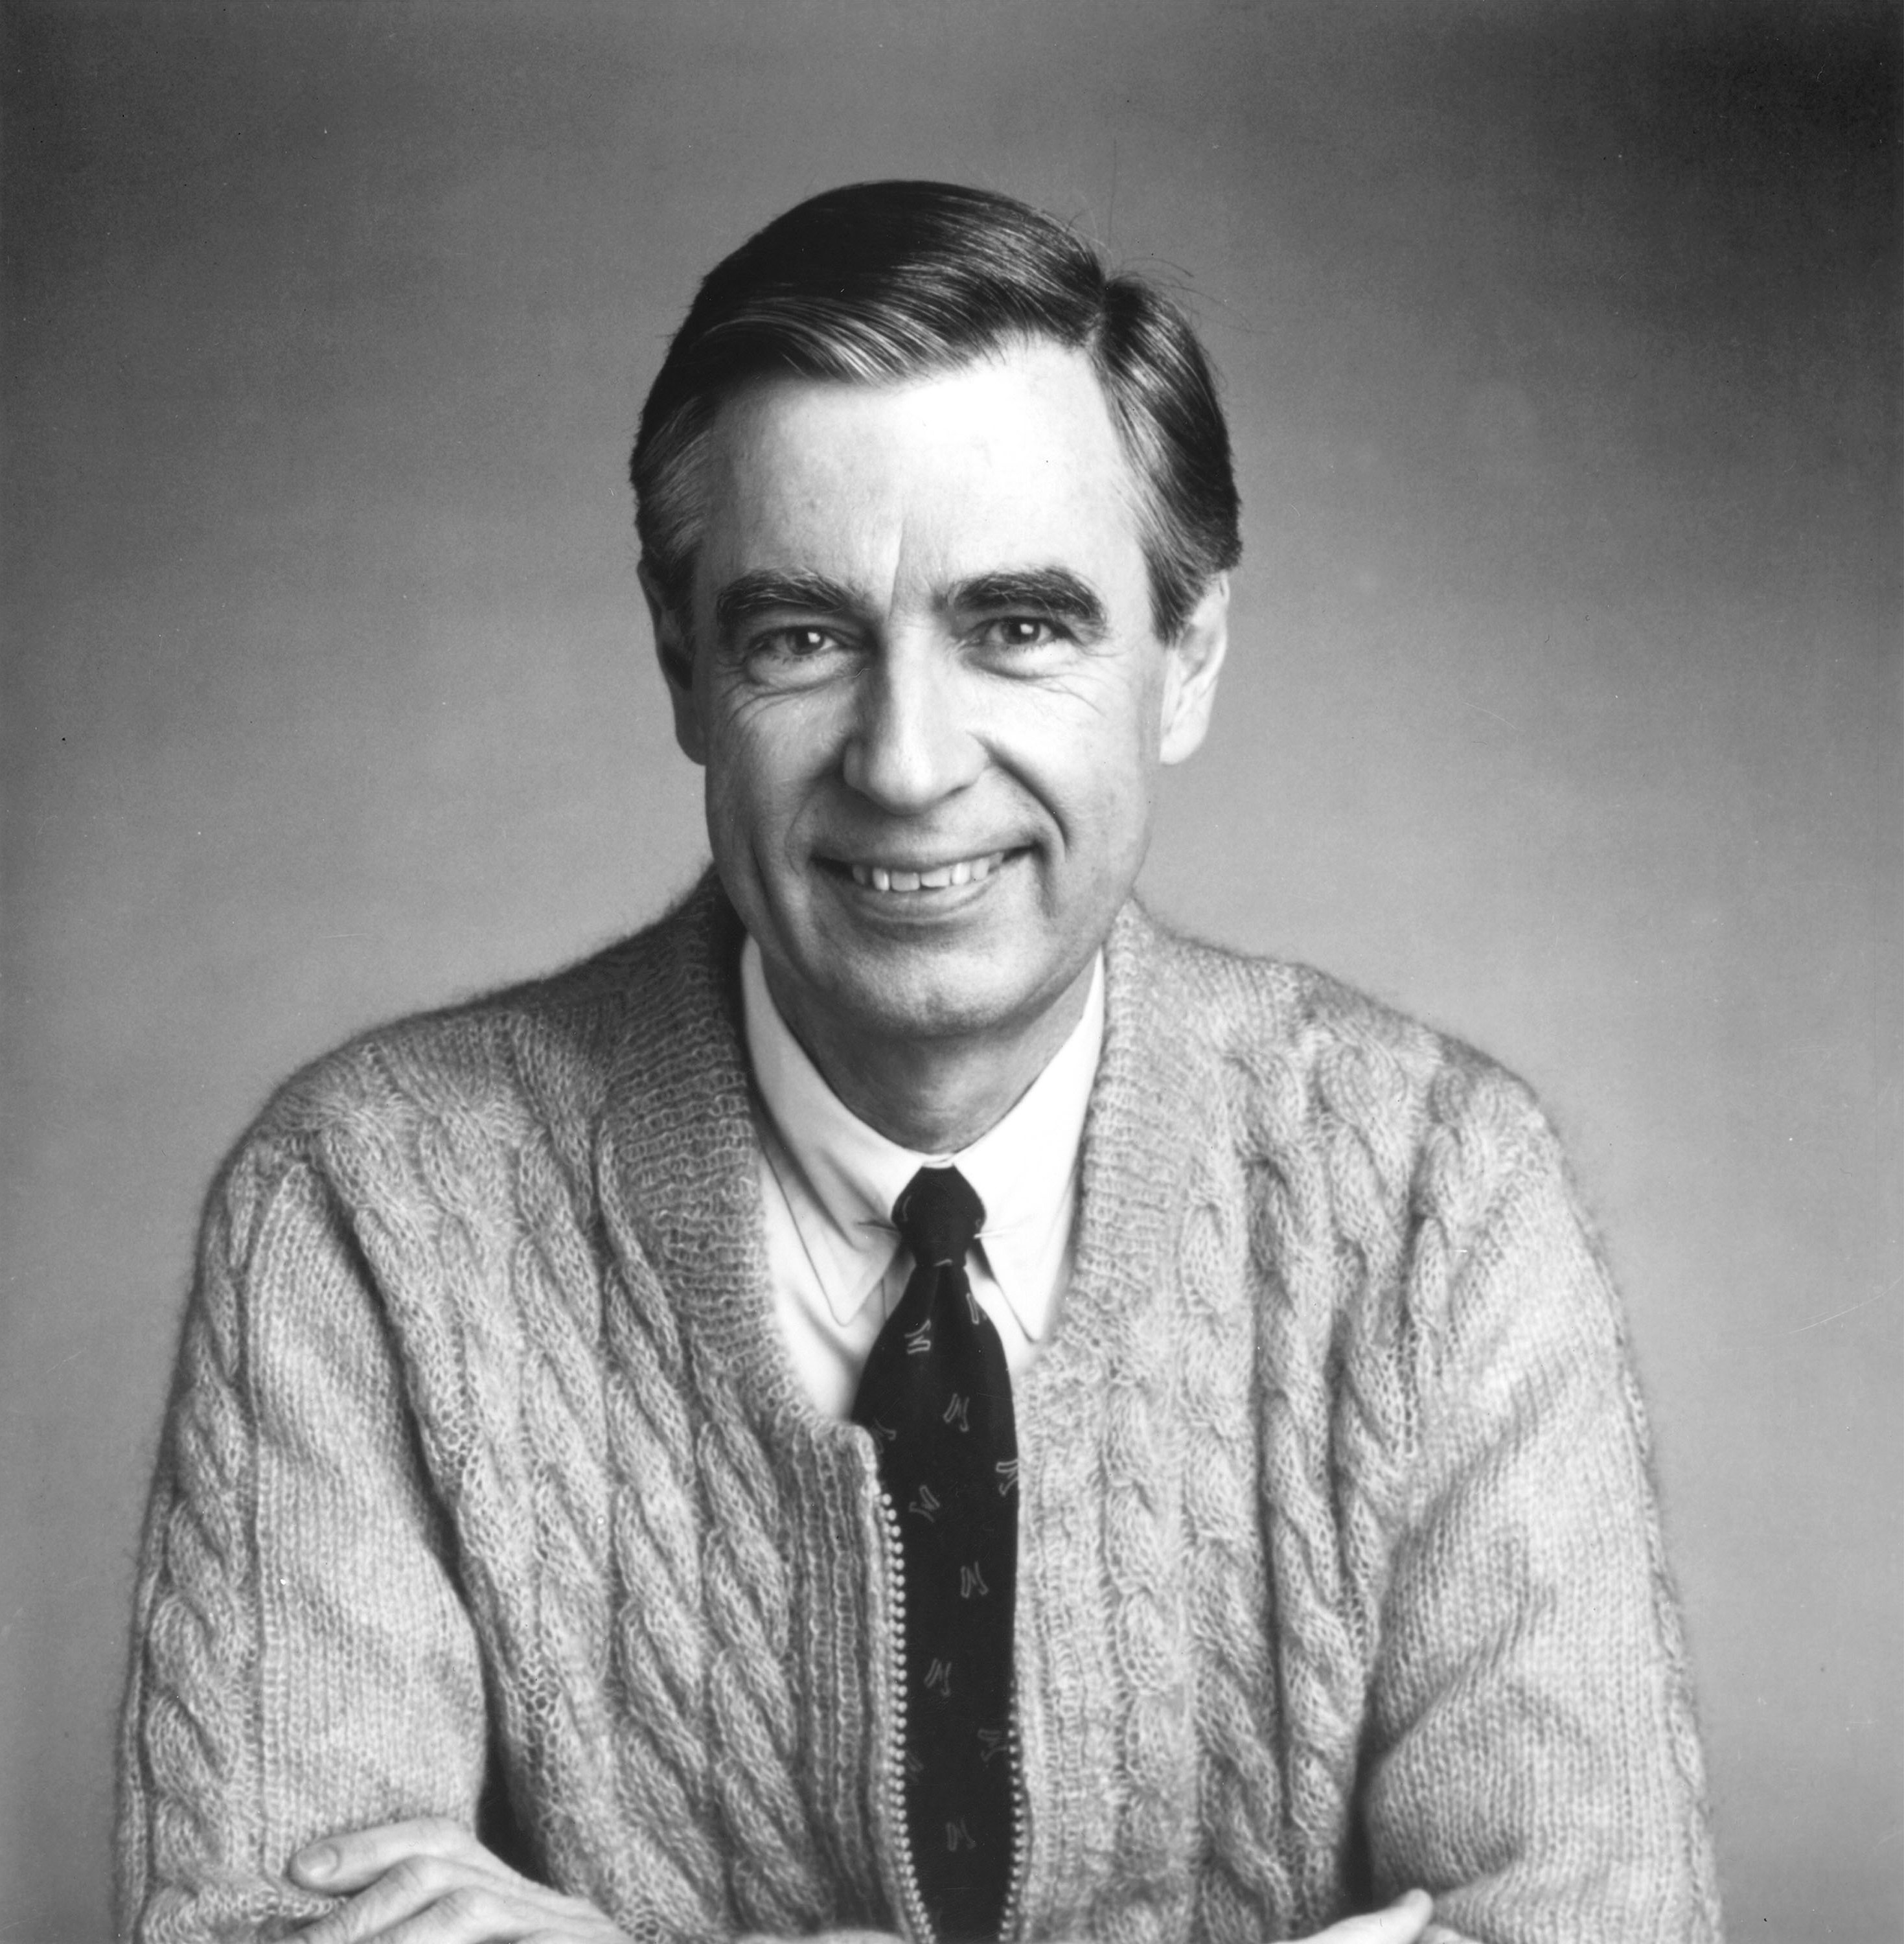 Mr. Rogers Fred Rogers Portrait in Black and White